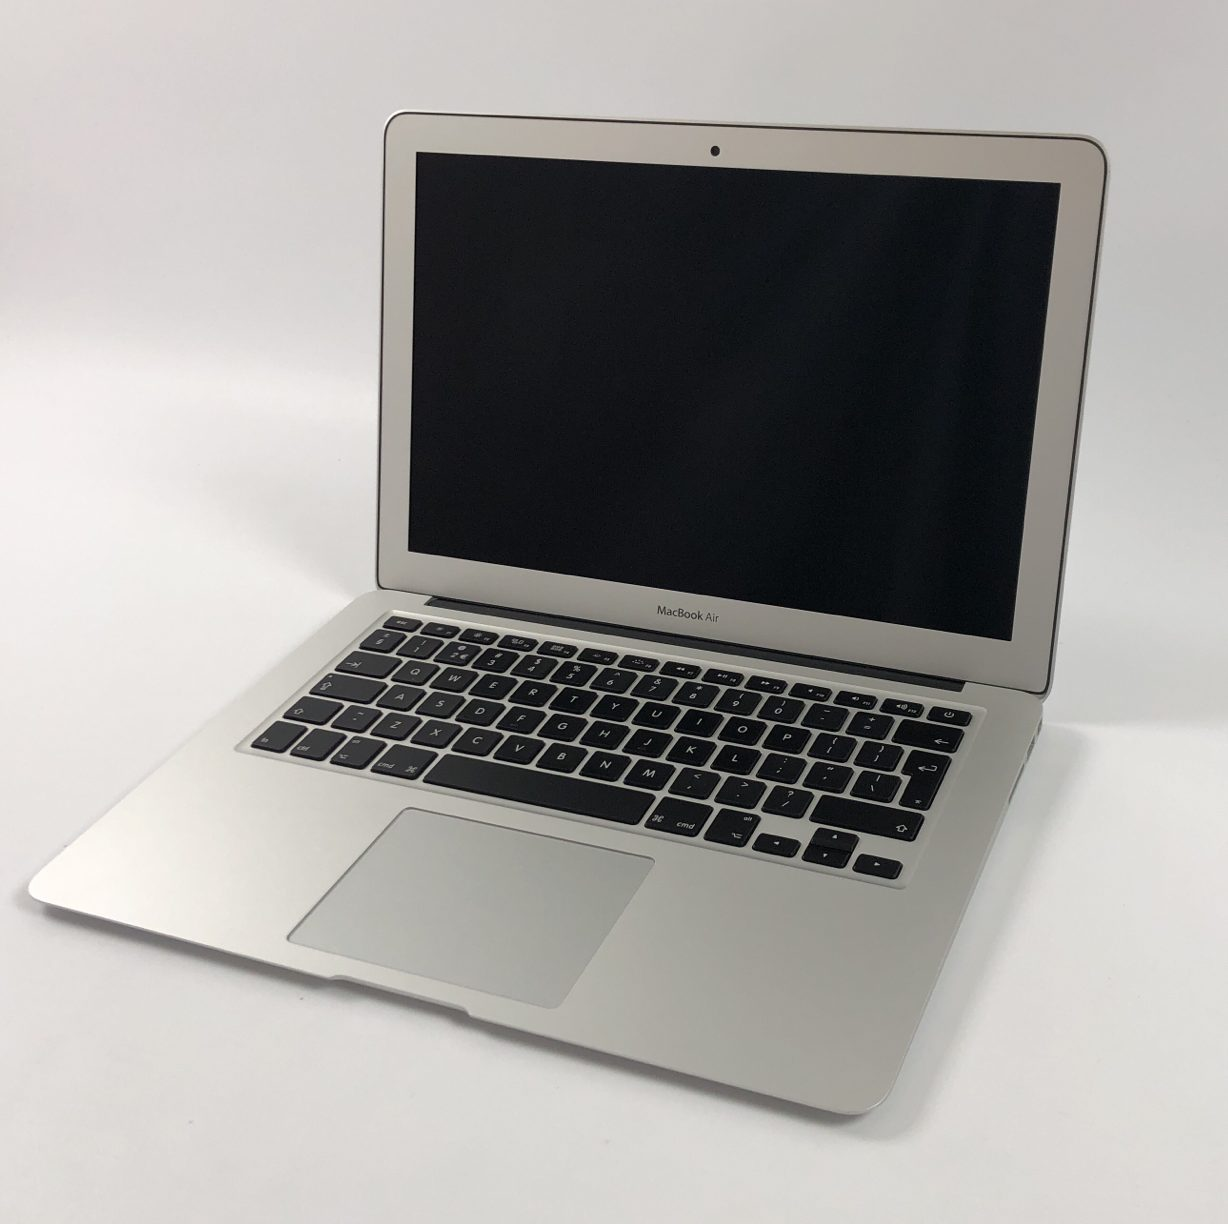 "MacBook Air 13"" Early 2015 (Intel Core i5 1.6 GHz 4 GB RAM 128 GB SSD), Intel Core i5 1.6 GHz, 4 GB RAM, 128 GB SSD, Afbeelding 1"